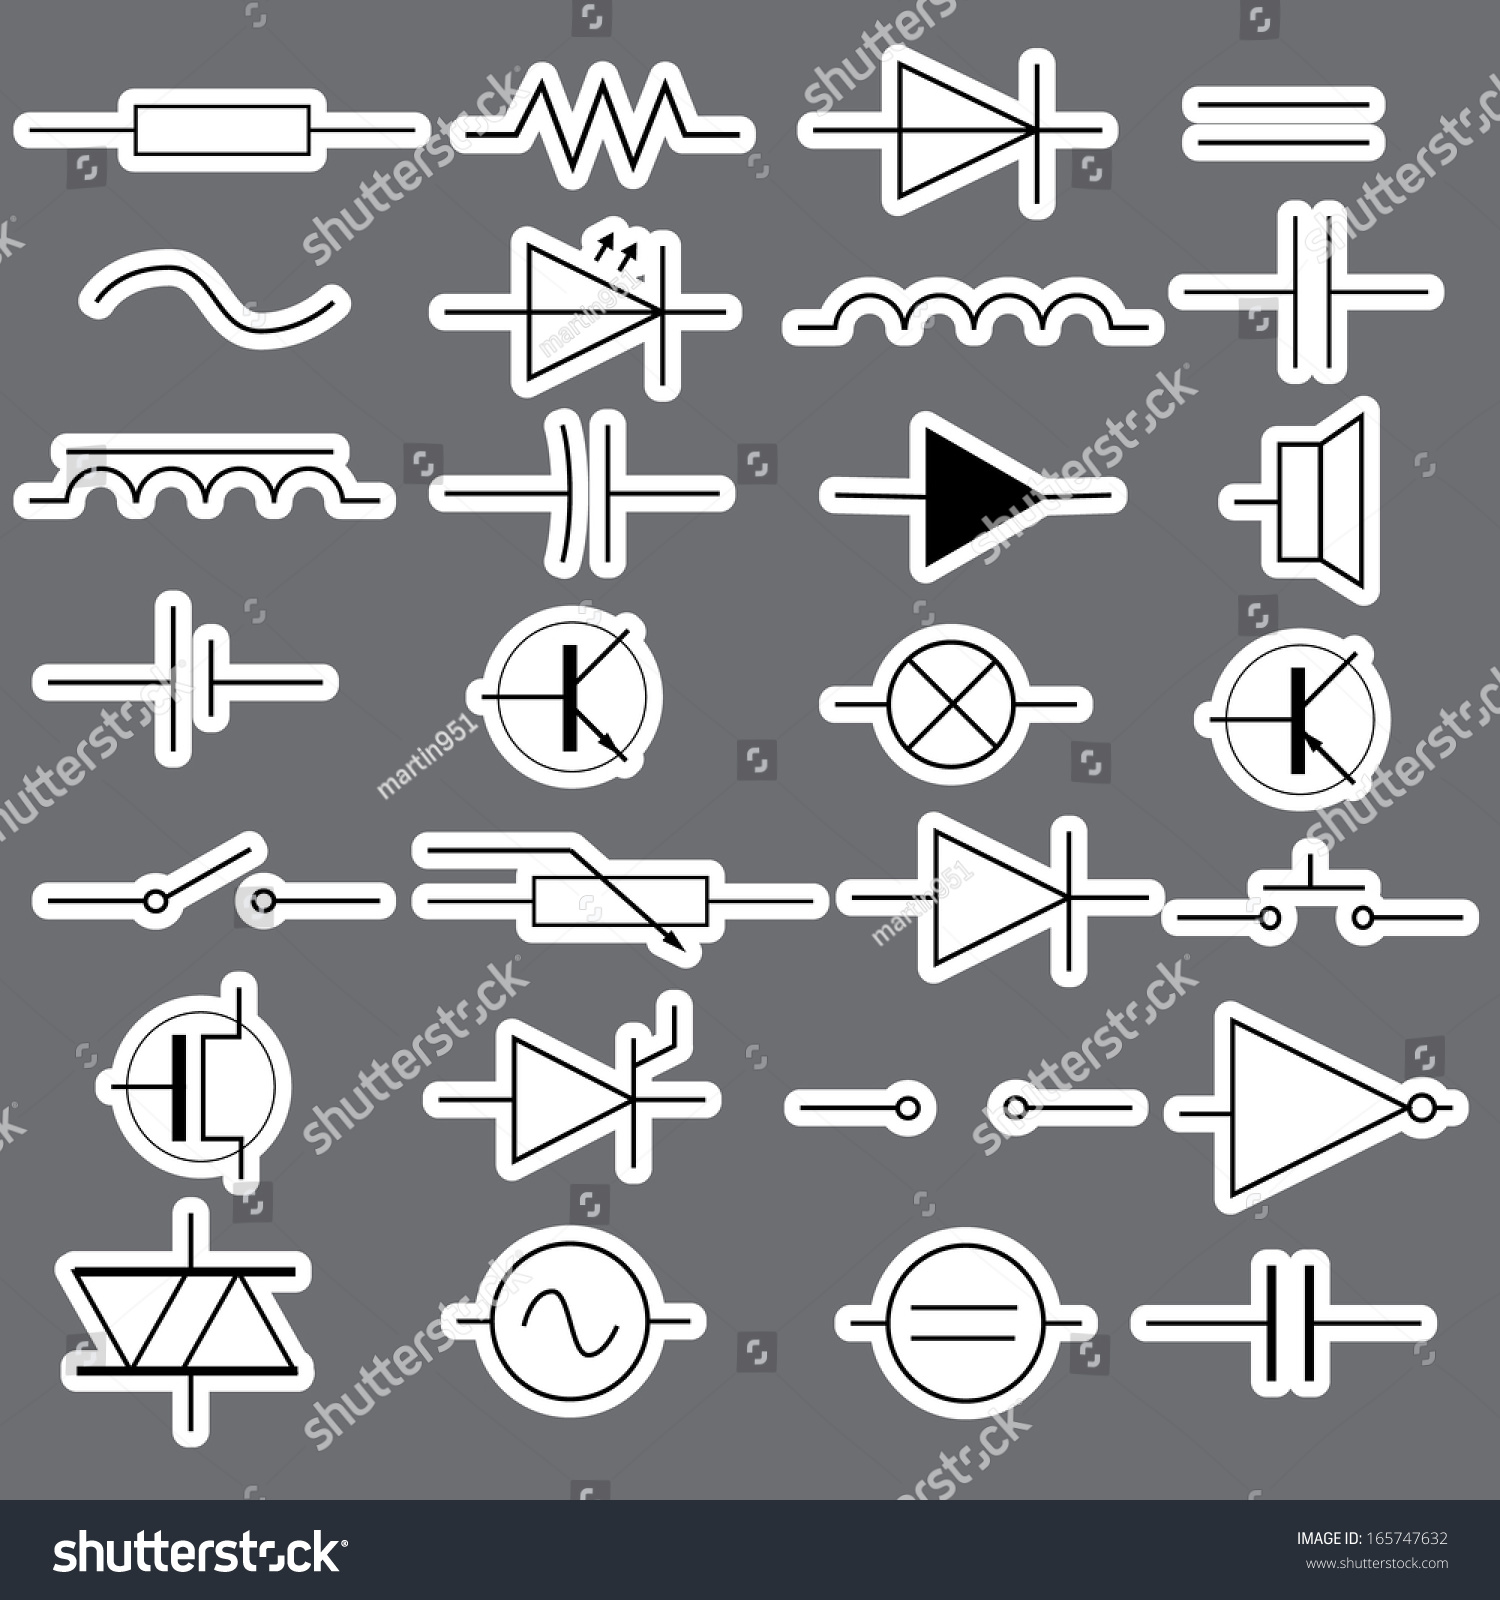 Schematic Symbols Electrical Engineering Stickers Eps 10 Stock Diagram In Eps10